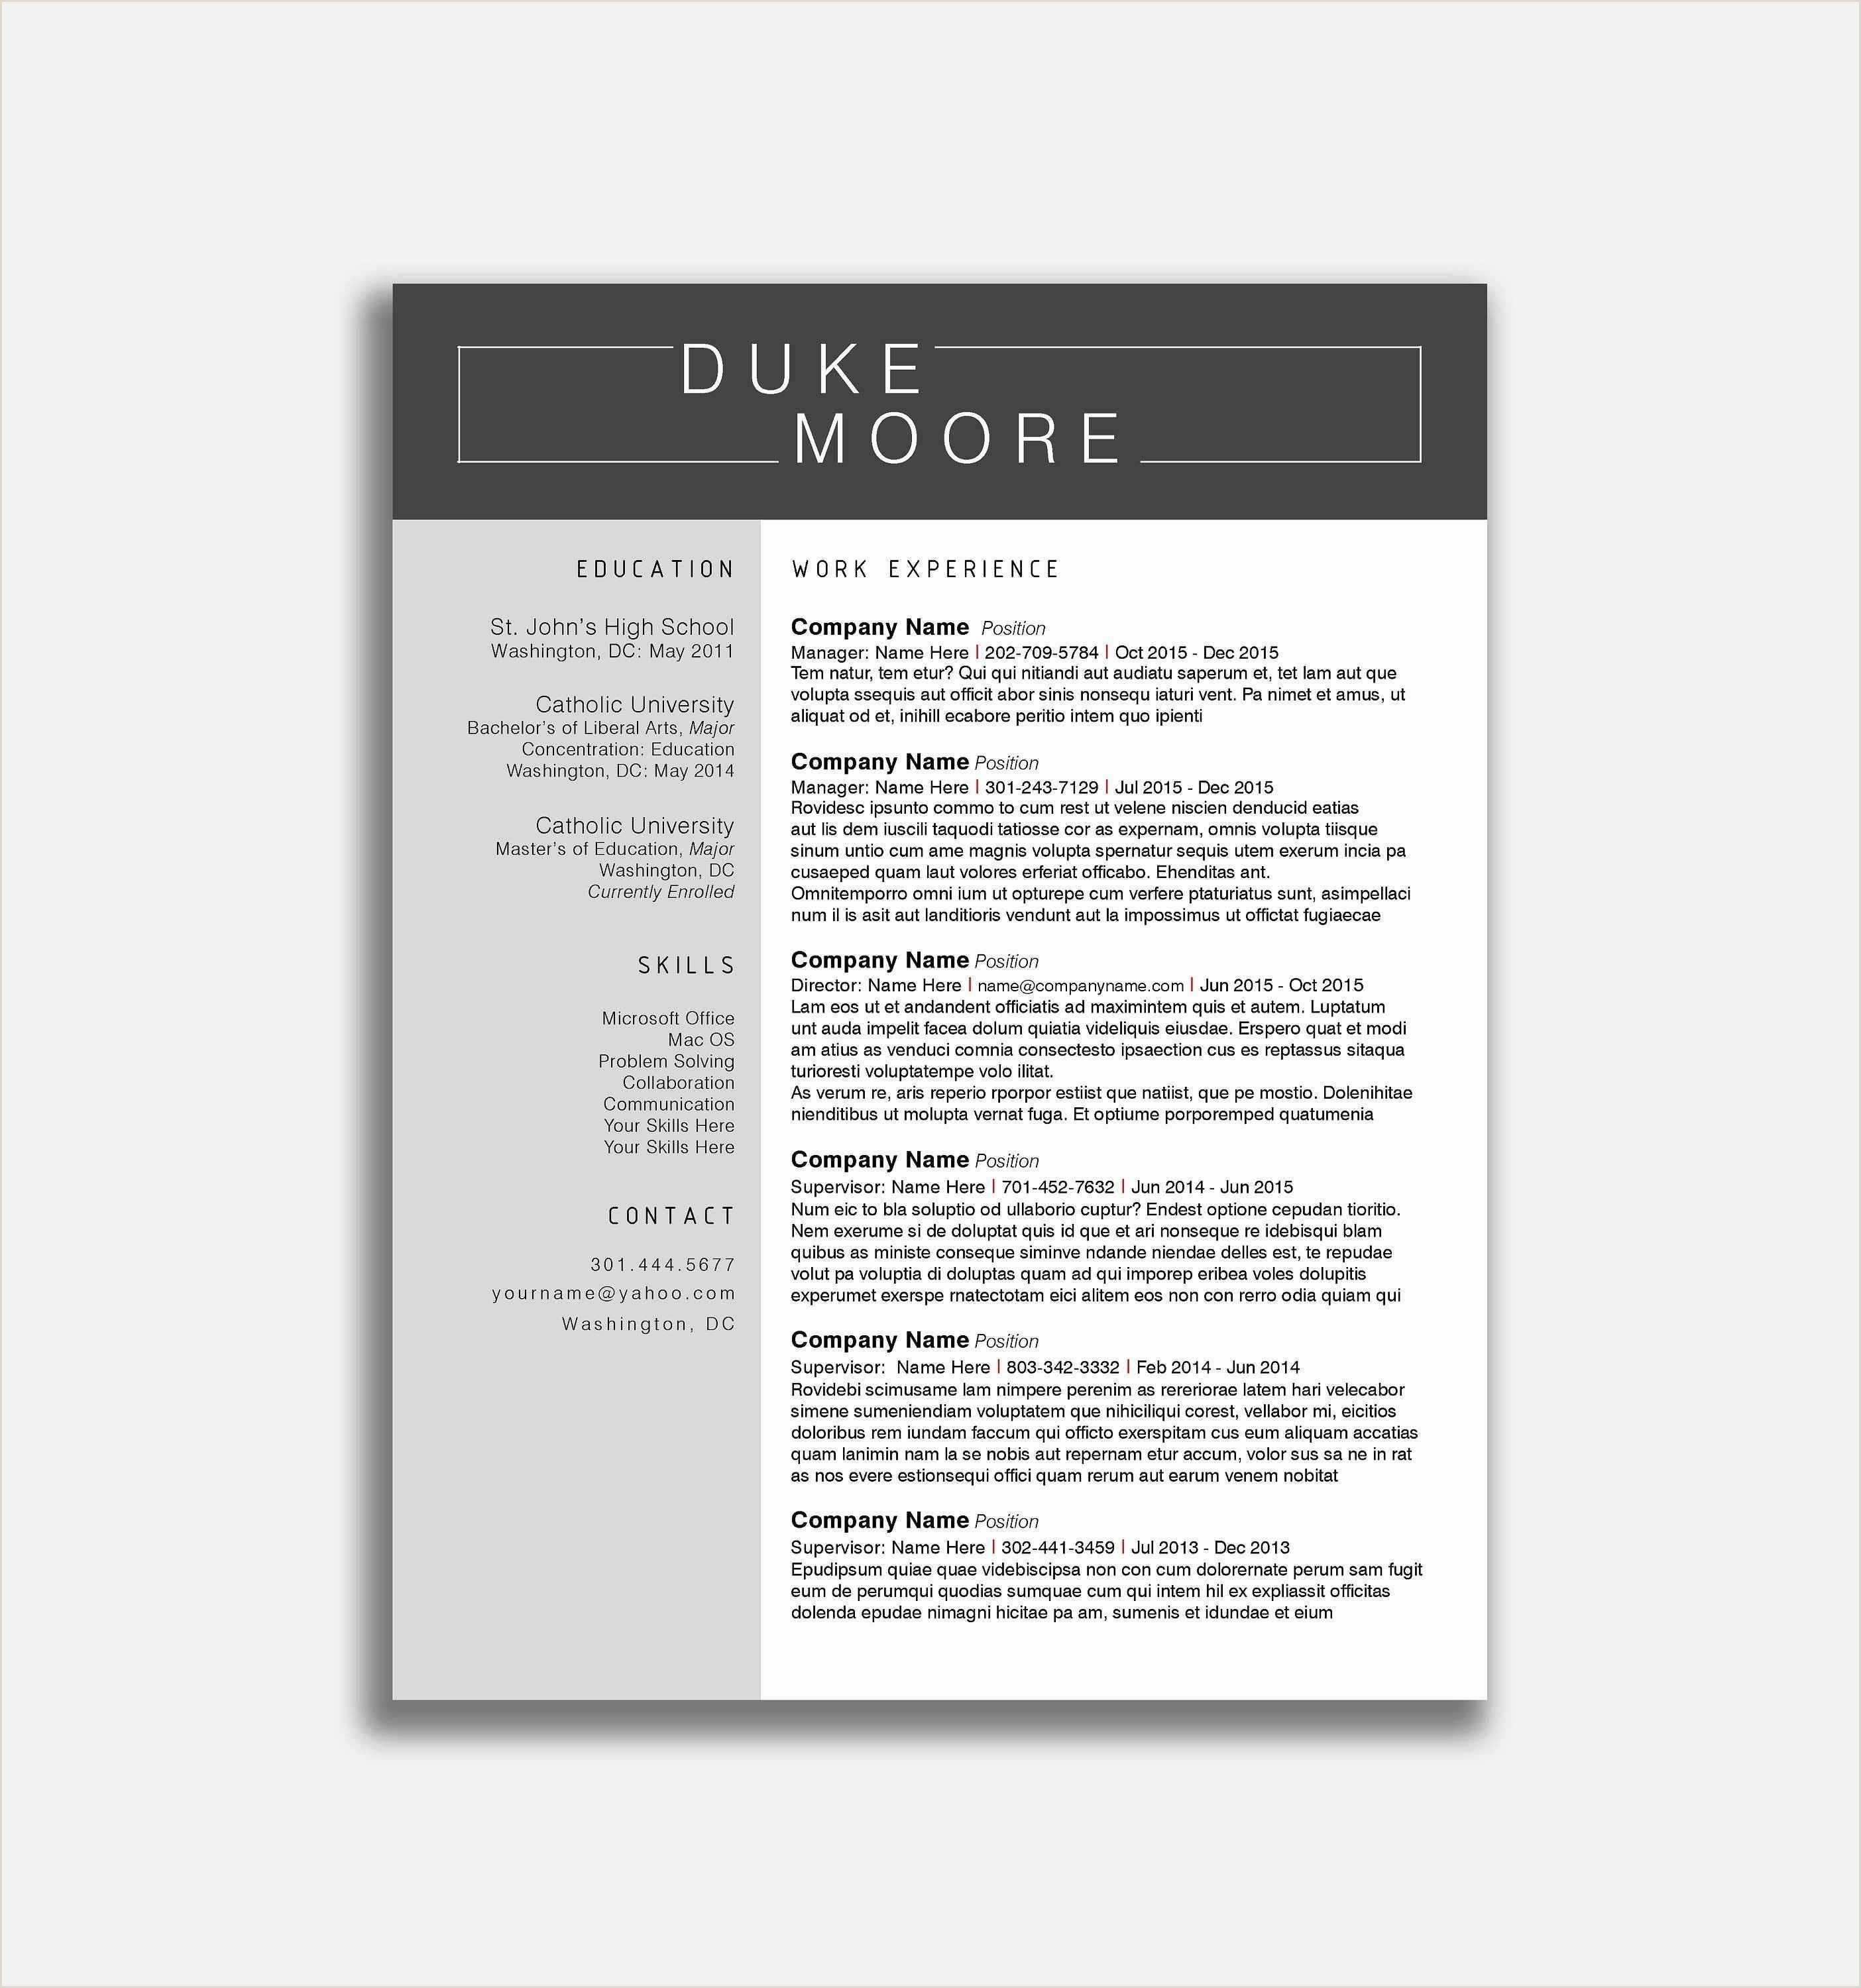 Fresher Resume Format In Word File Engineering Resume Templates Word Awesome Collection